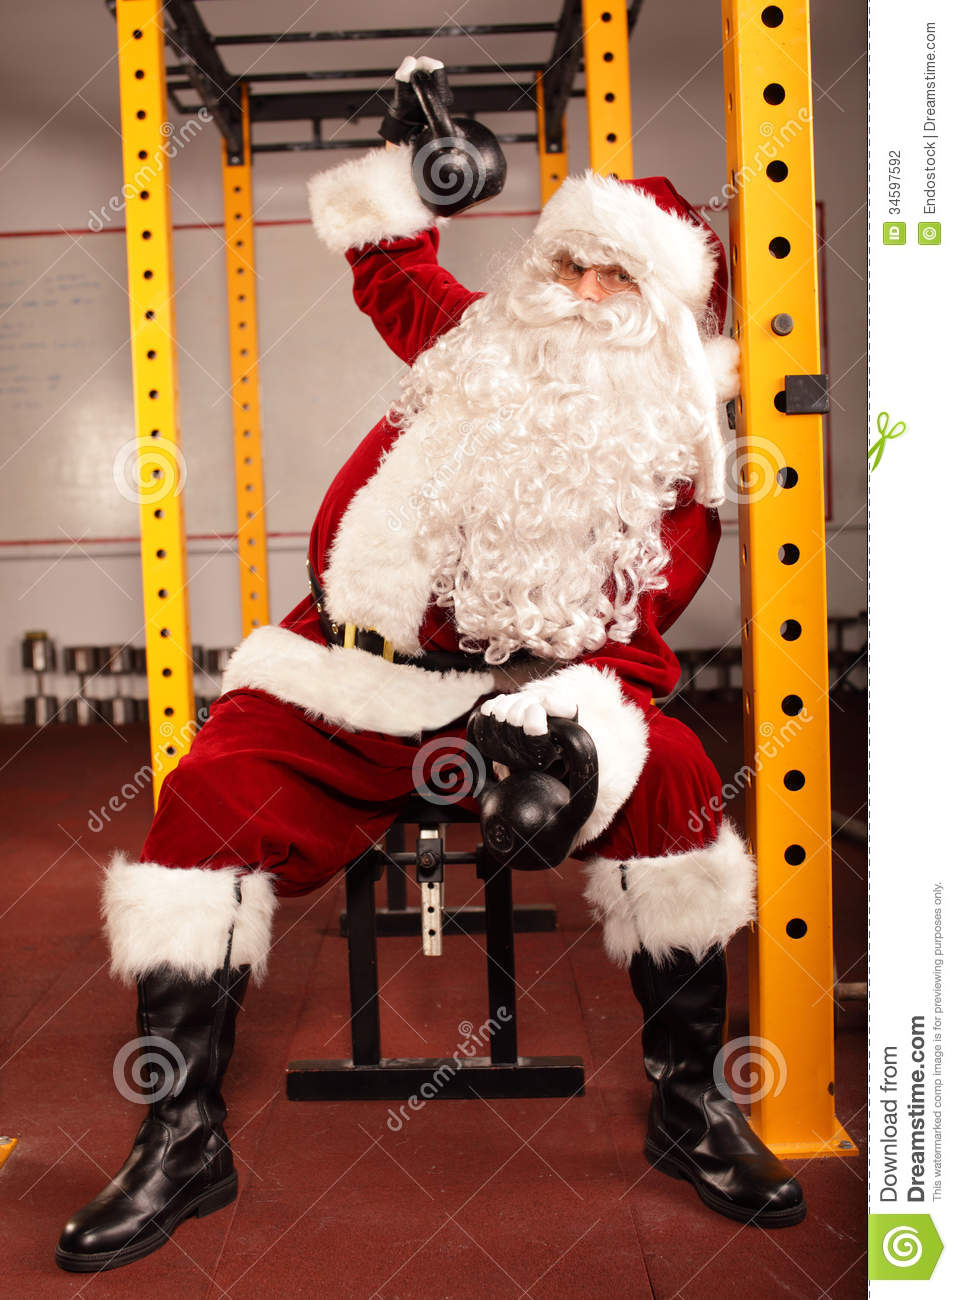 Santa Claus Training Before Christmas In Gym - Ket Stock ...